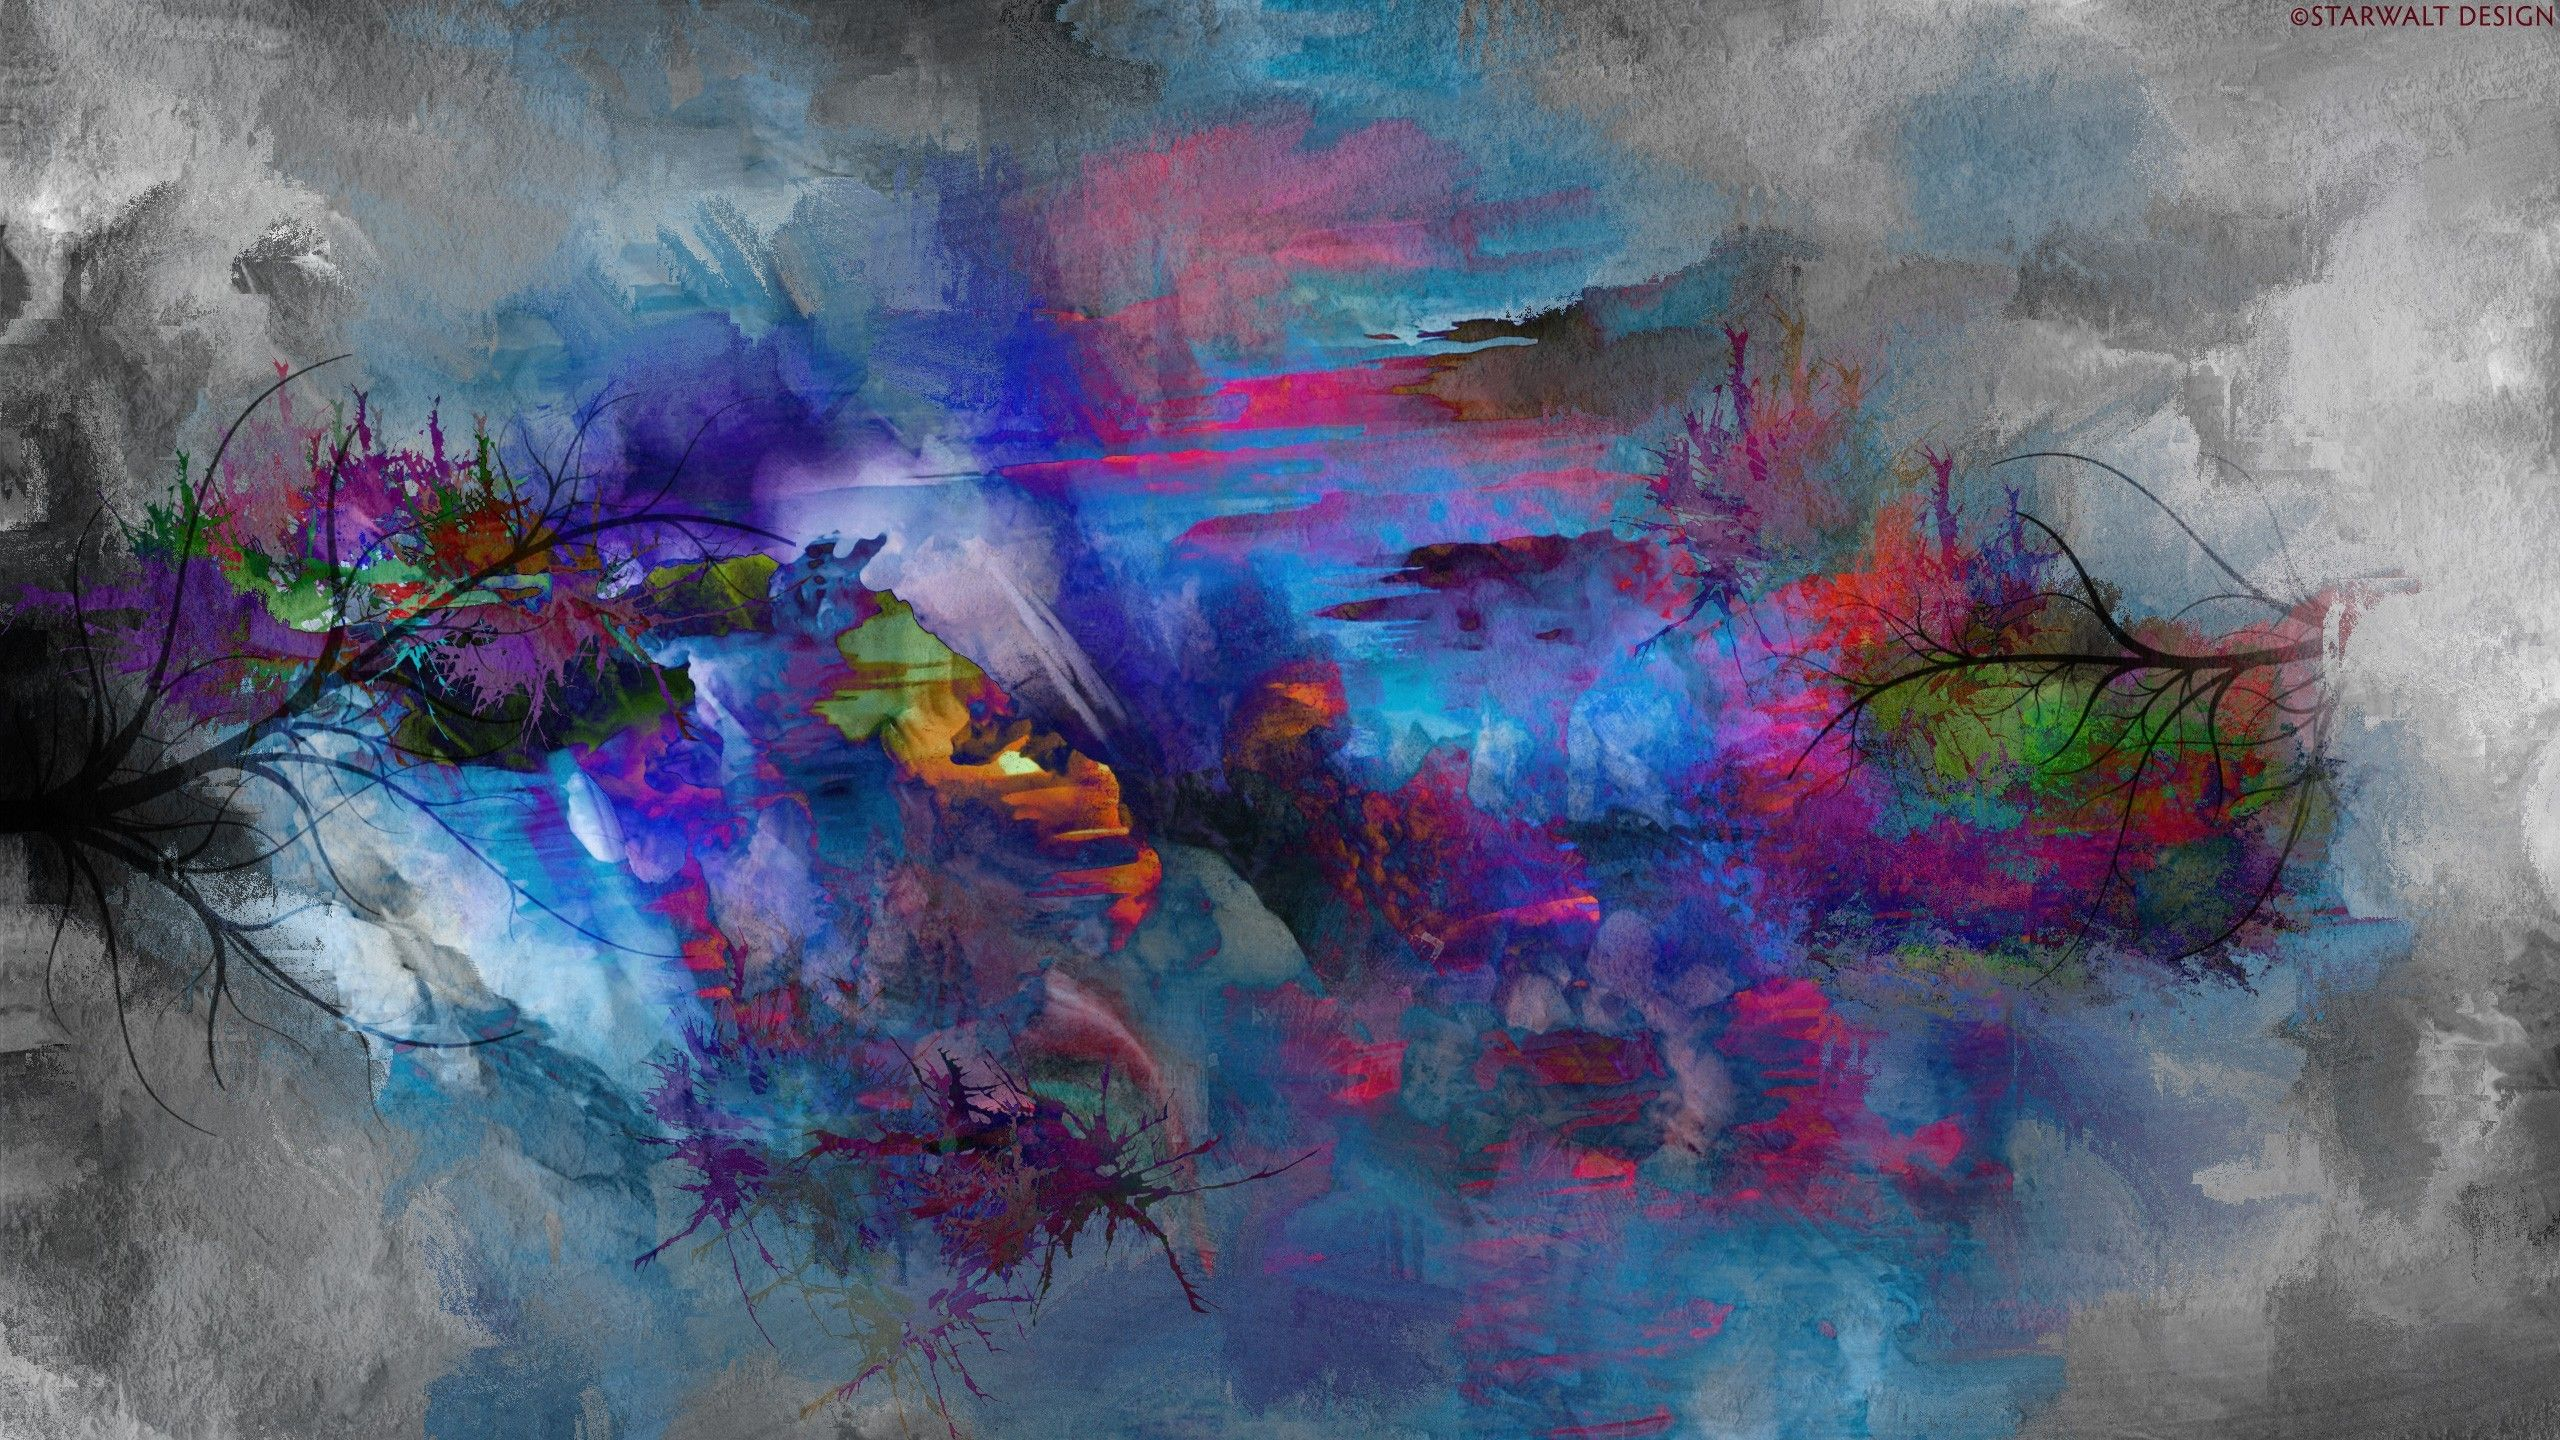 Abstract painting artwork colorful wallpaper also mocah in rh pinterest